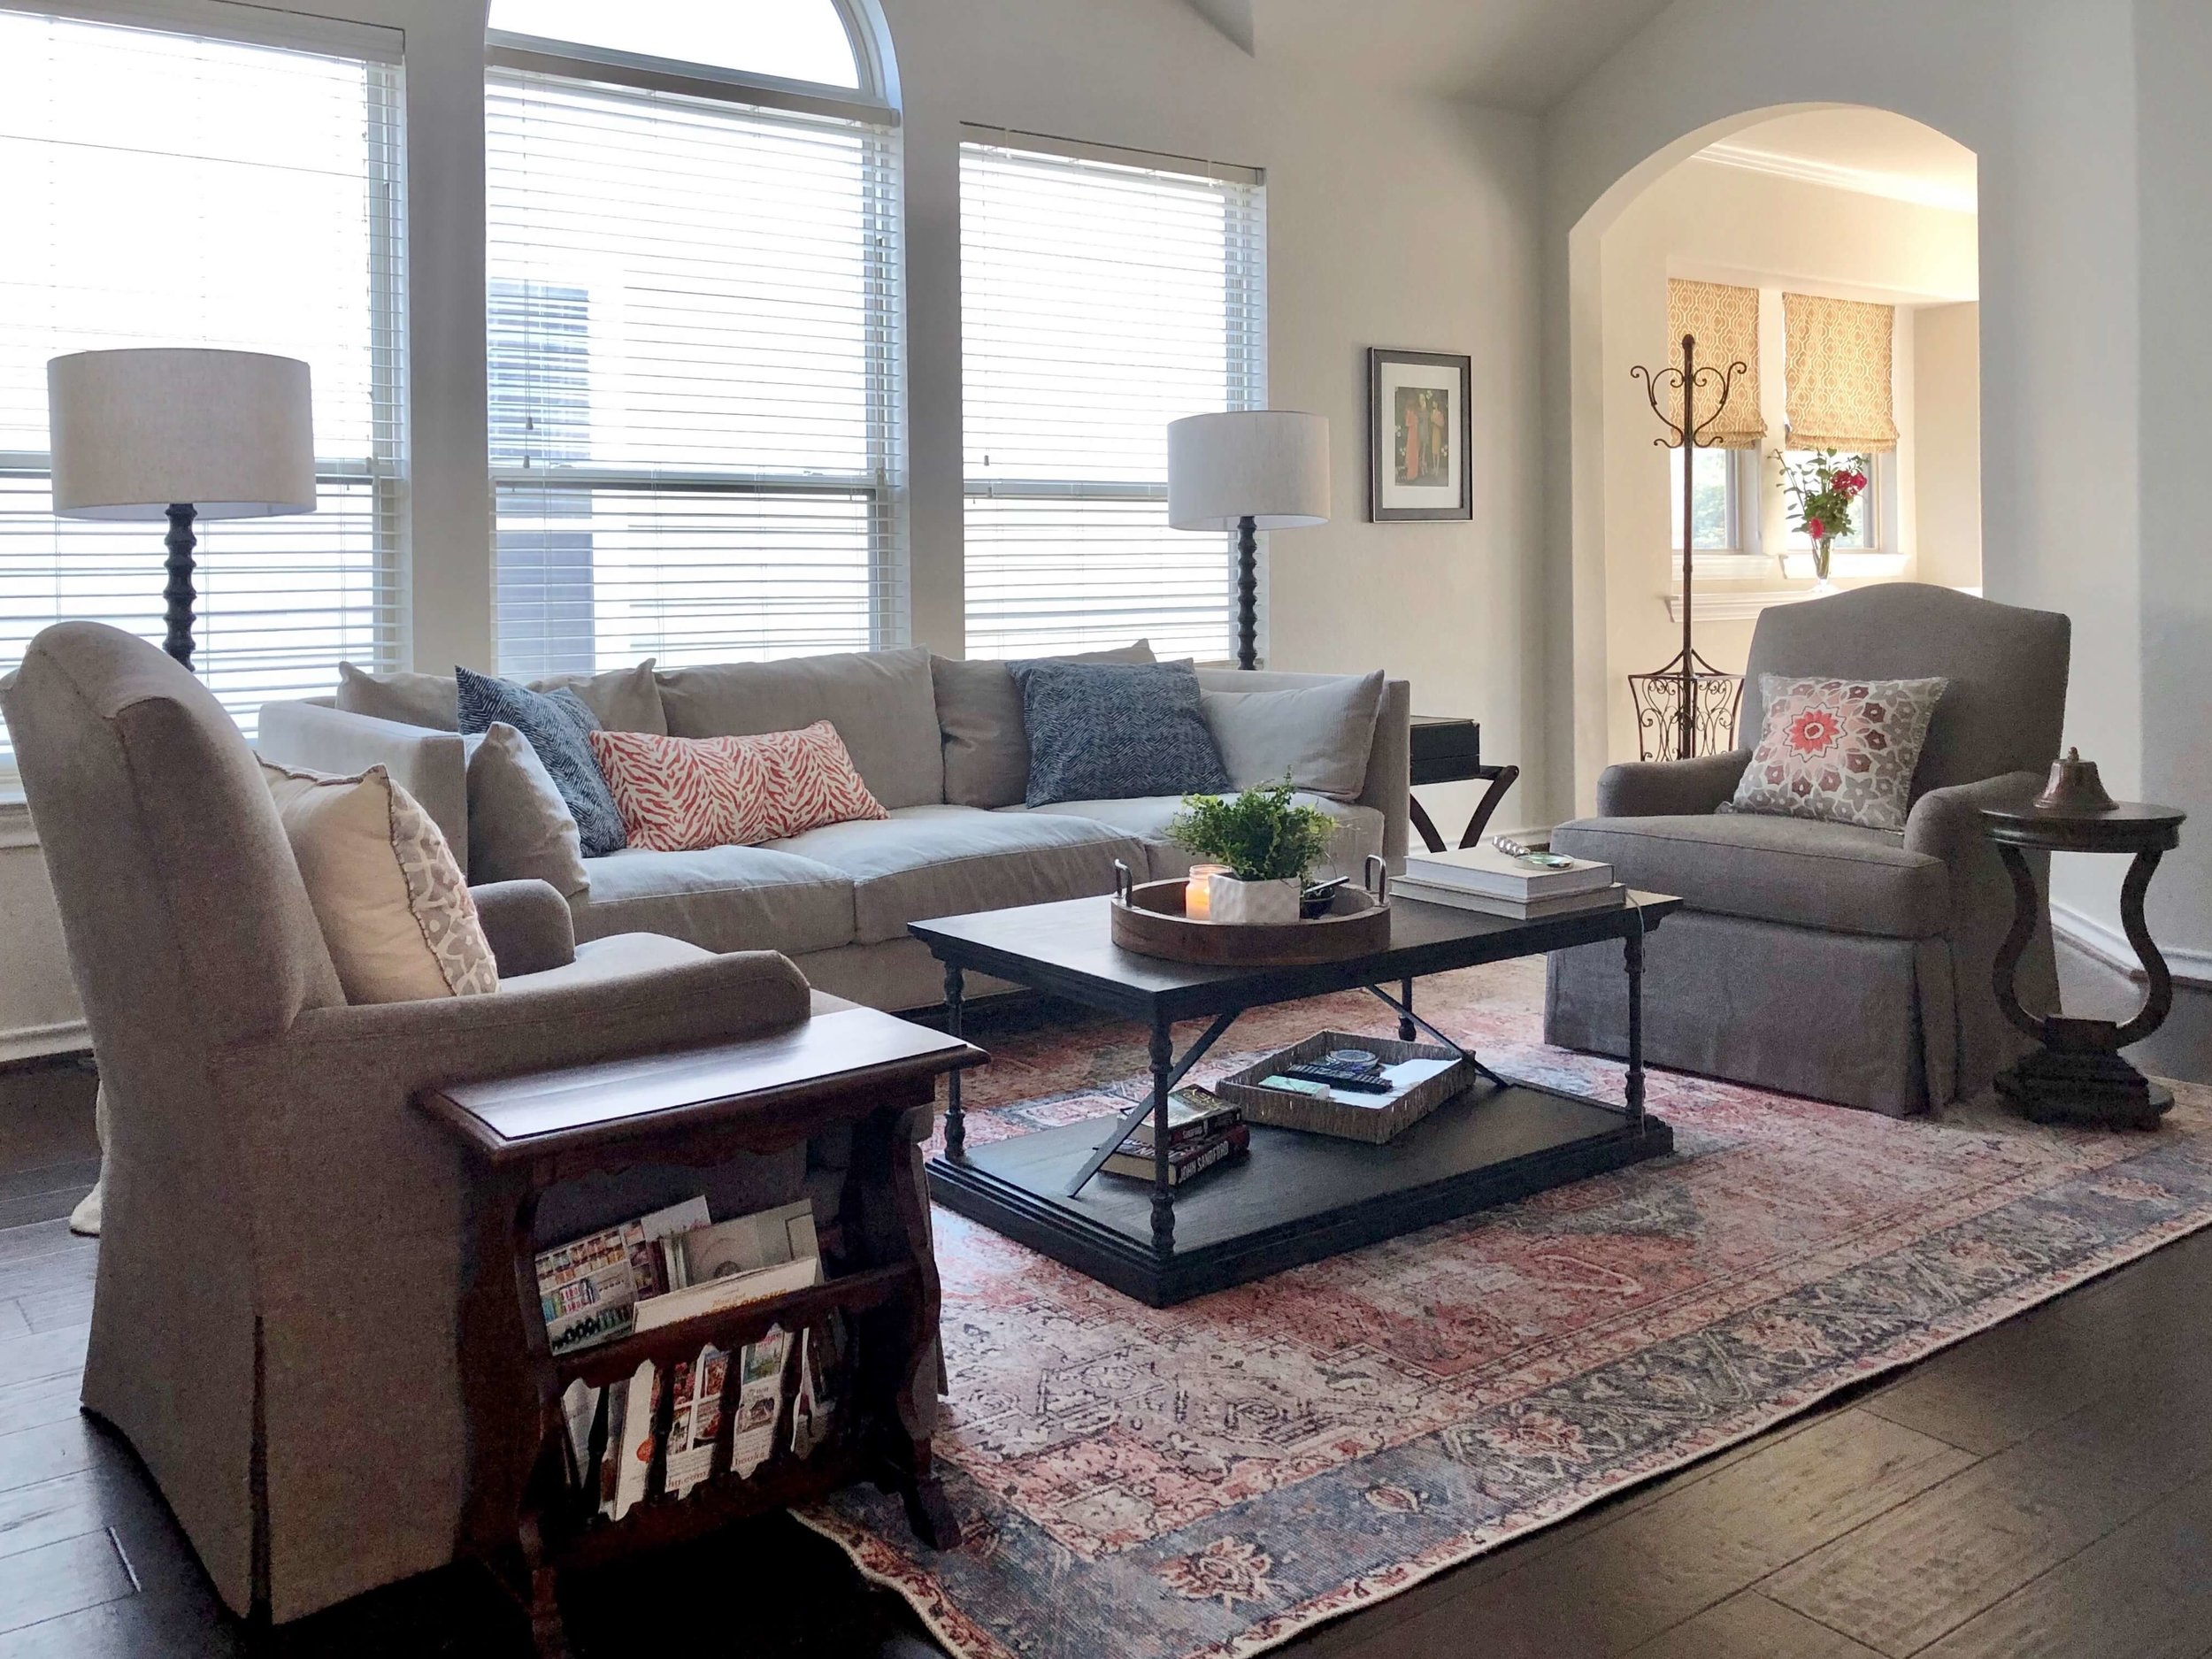 A simple, clean-lined sofa and these quality lounge chairs in gray fabrics provide a nice base for pillows and a rug in the homeowner's preferred palette.